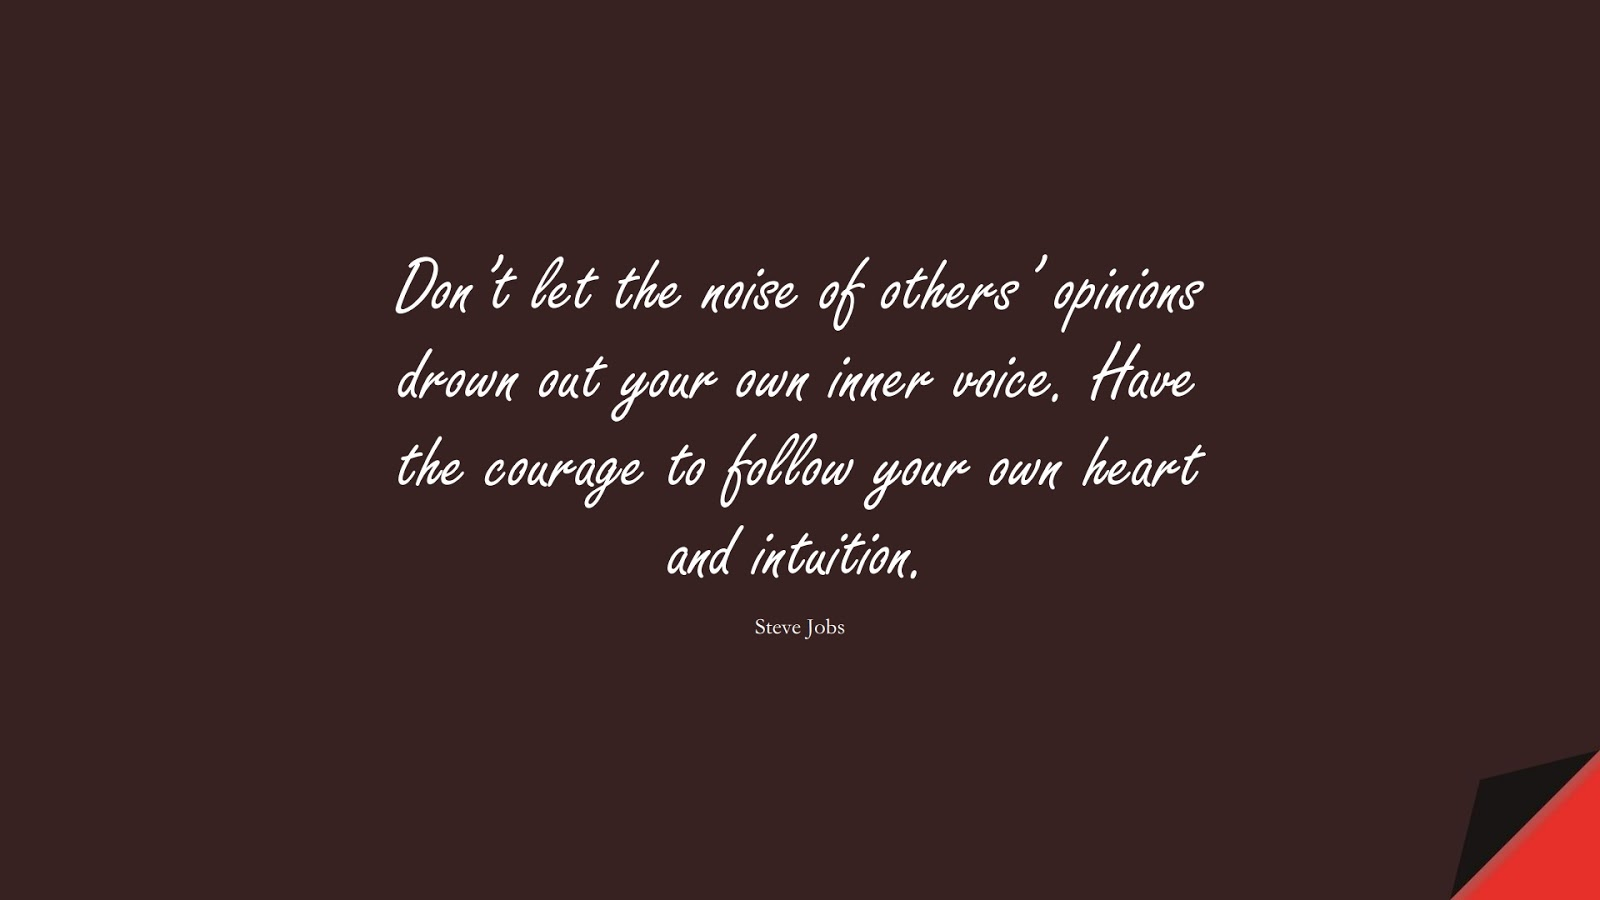 Don't let the noise of others' opinions drown out your own inner voice. Have the courage to follow your own heart and intuition. (Steve Jobs);  #CourageQuotes